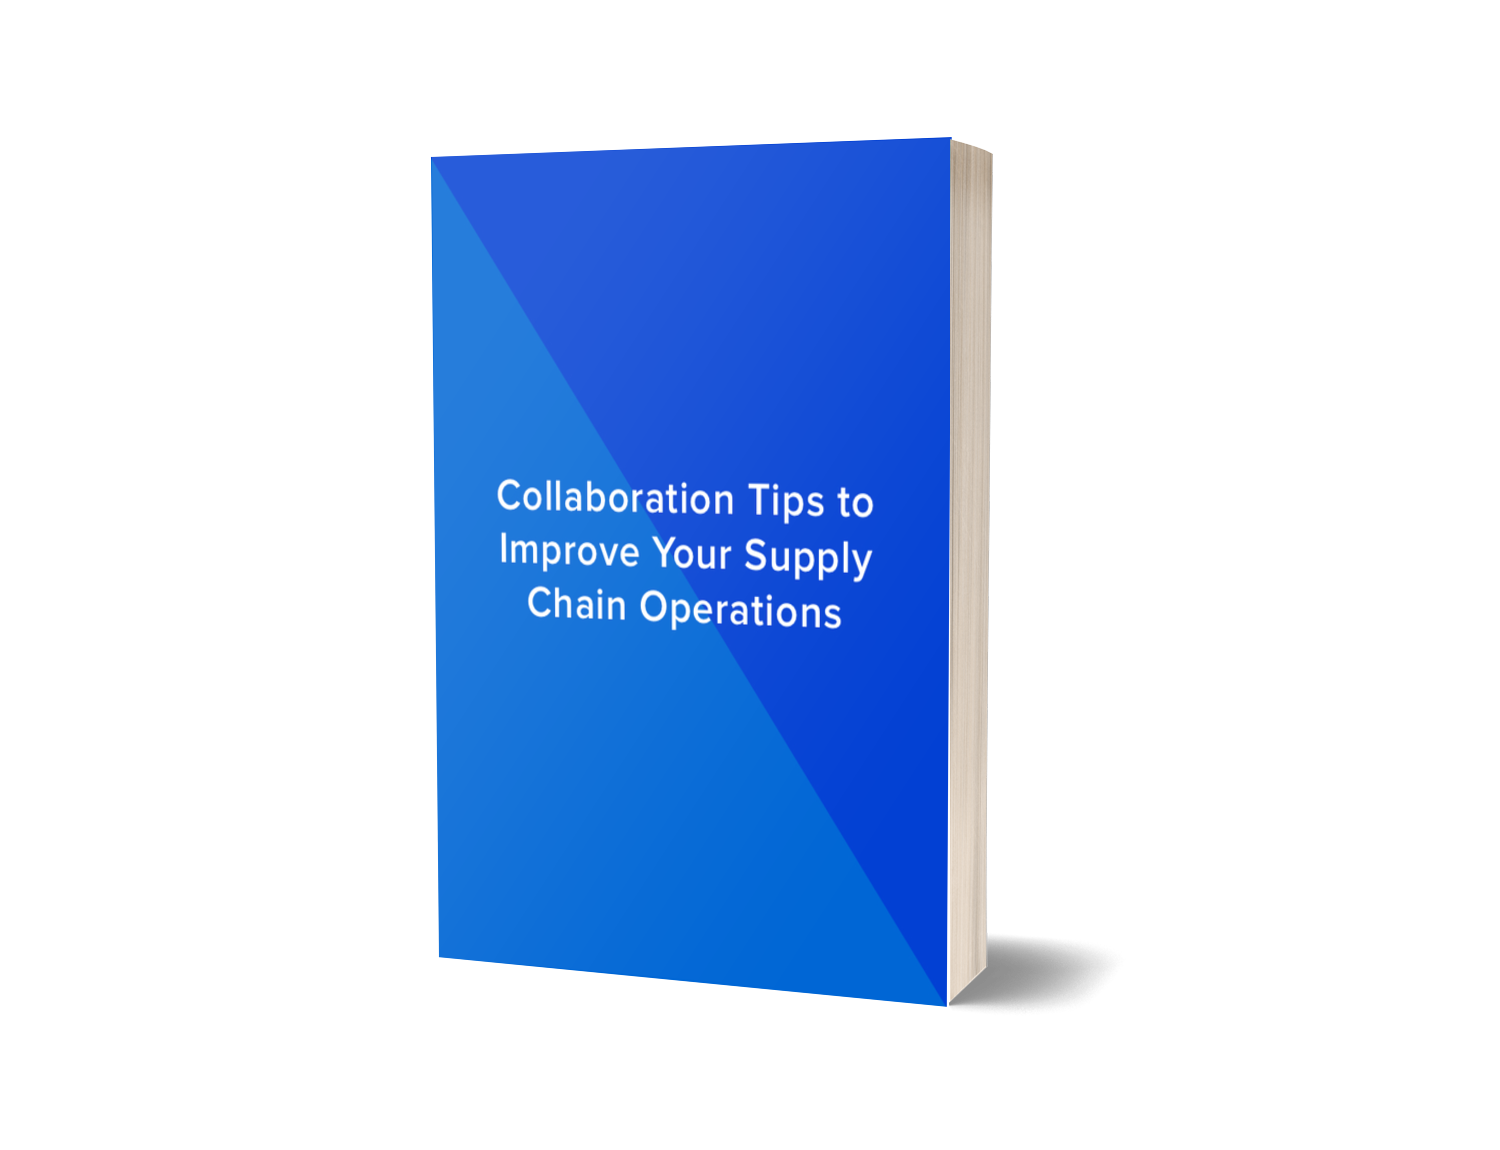 ebook-collabtips.png